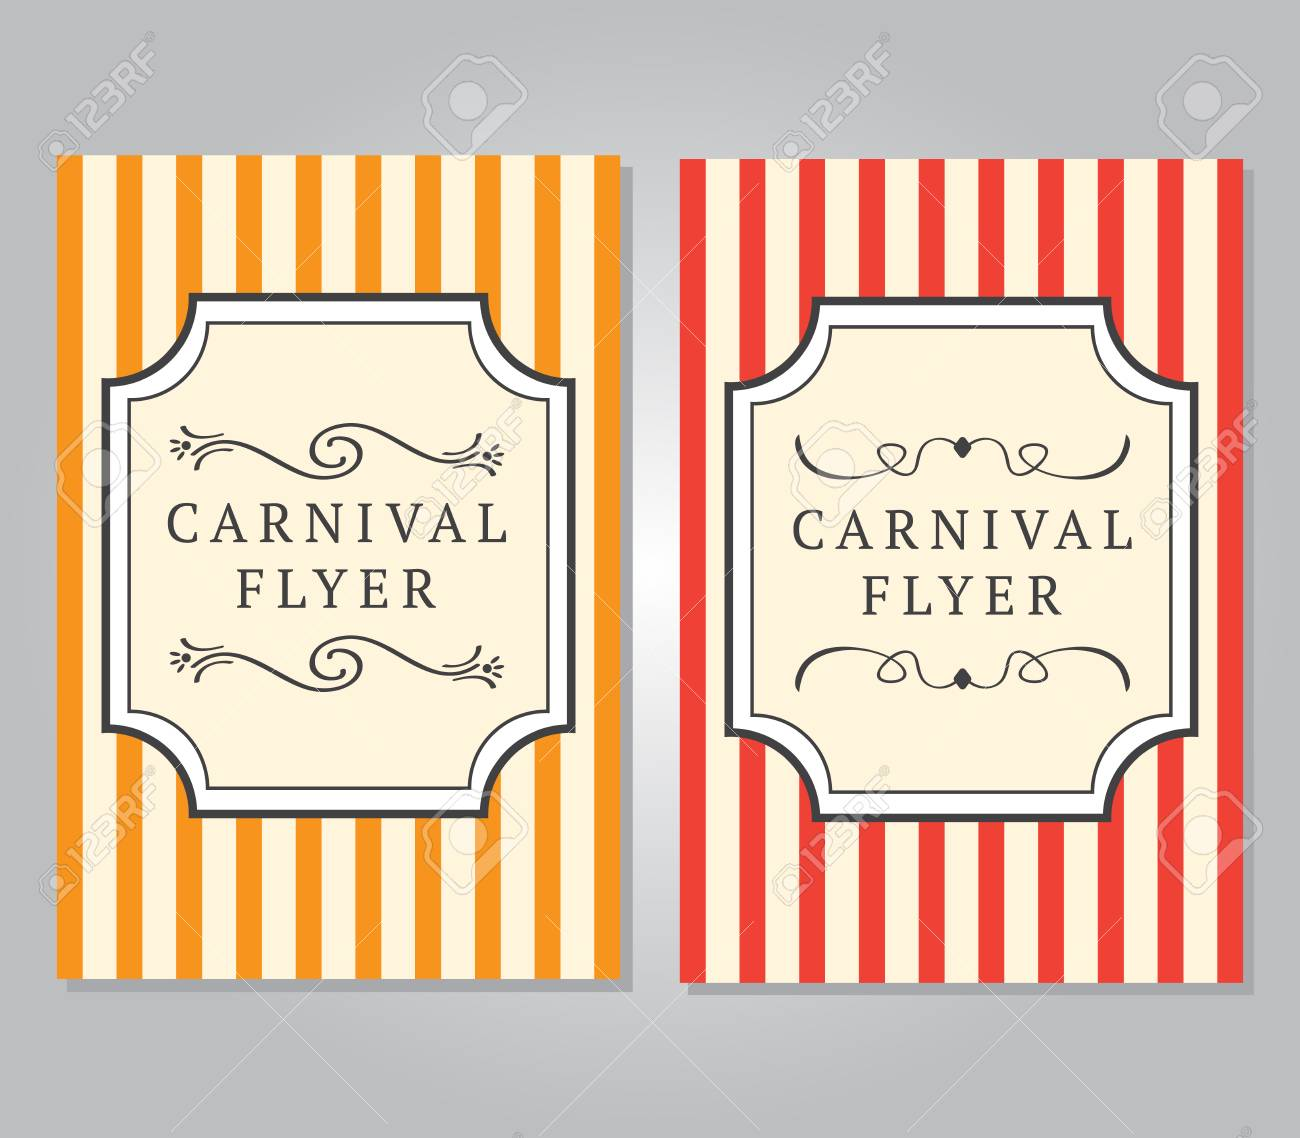 carnival flyer template royalty free cliparts vectors and stock